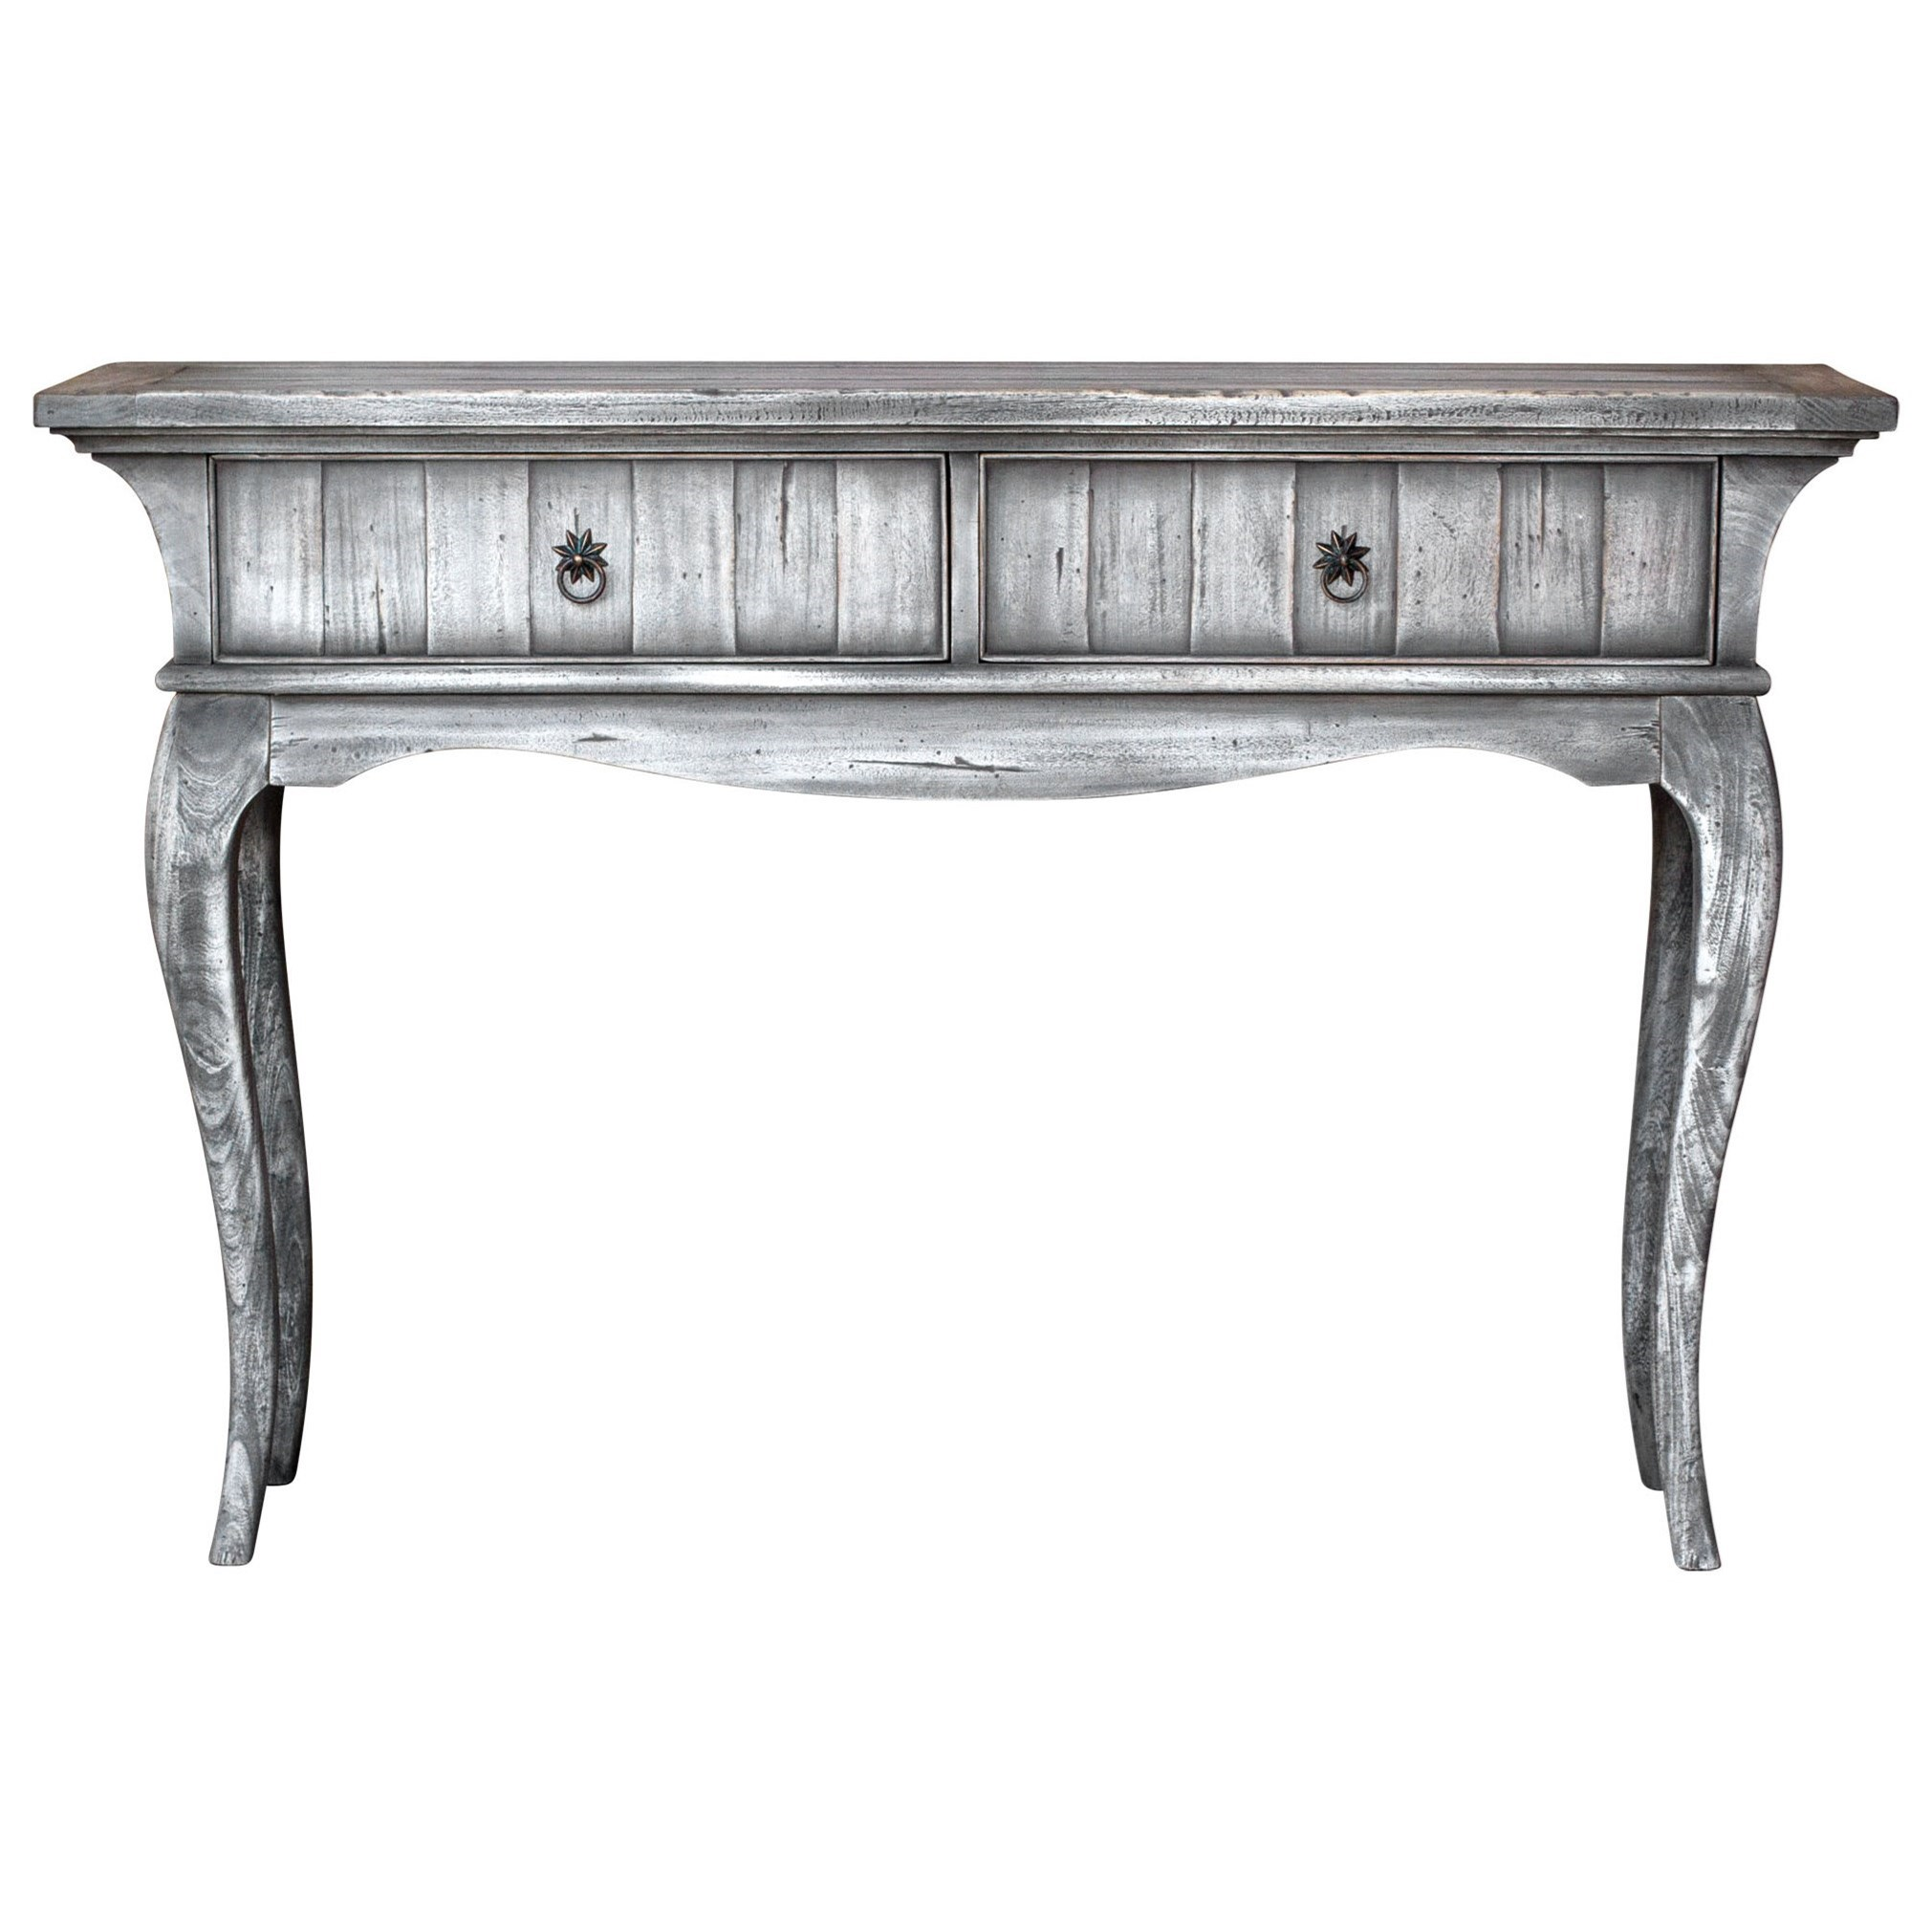 Uttermost Accent Furniture Bernie Wooden Console Table - Item Number: 25715